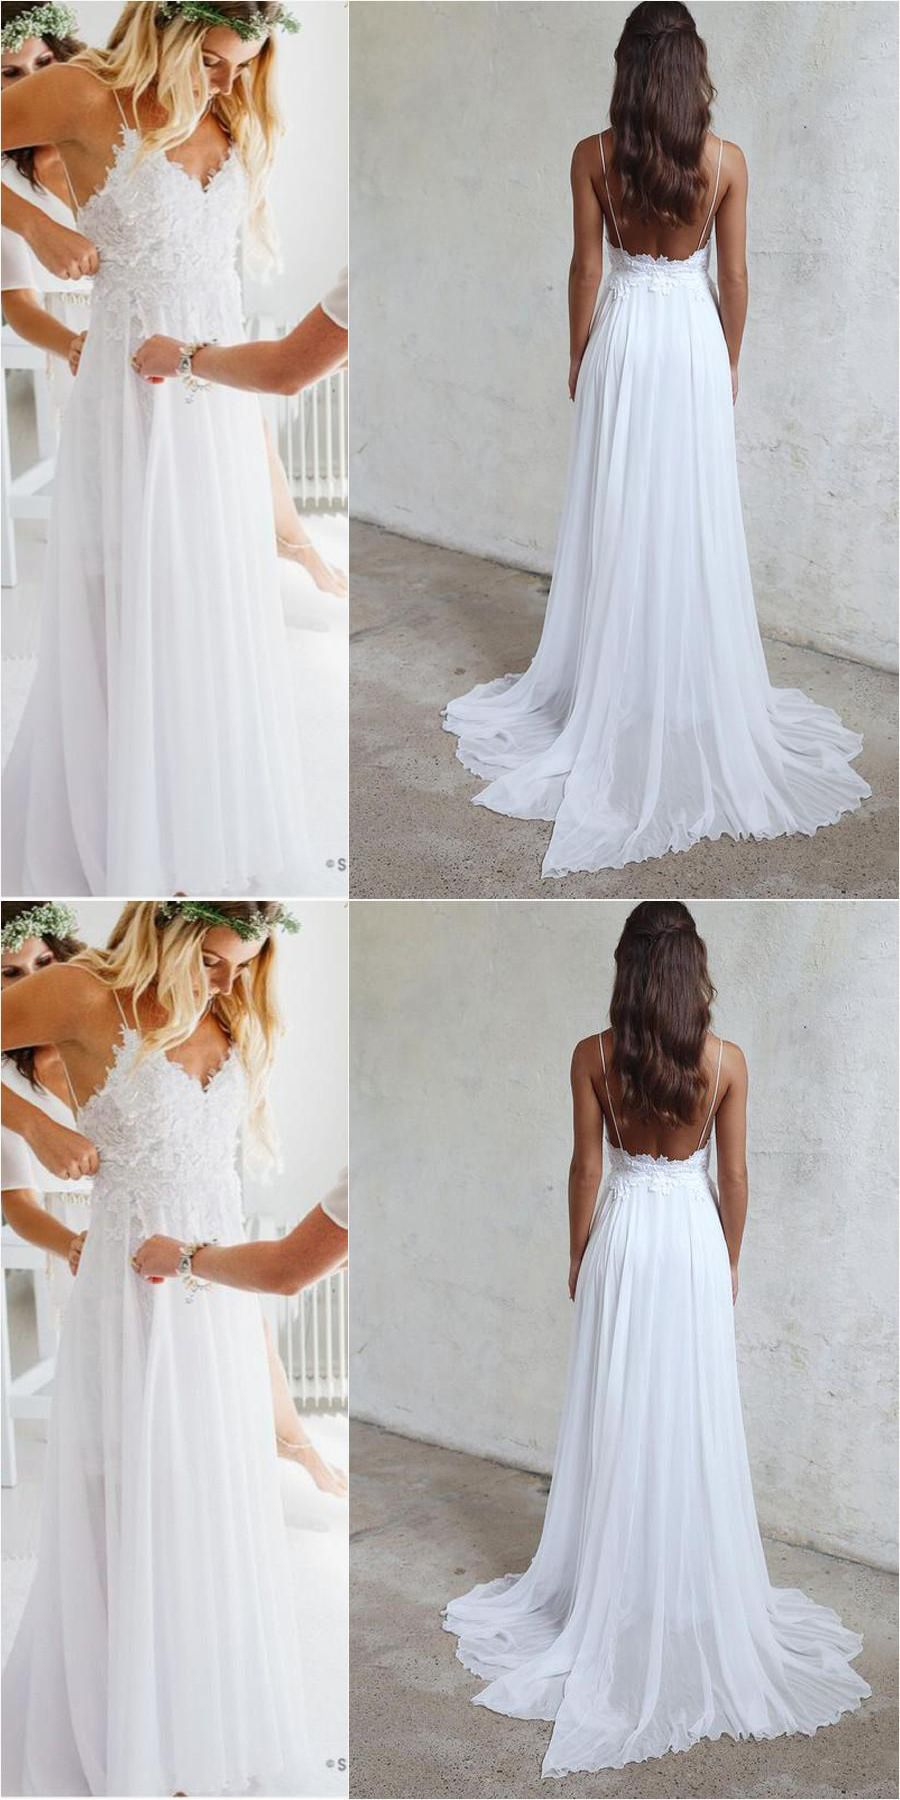 Spaghetti Straps White Long Chiffon Lace Beach Wedding Dresses